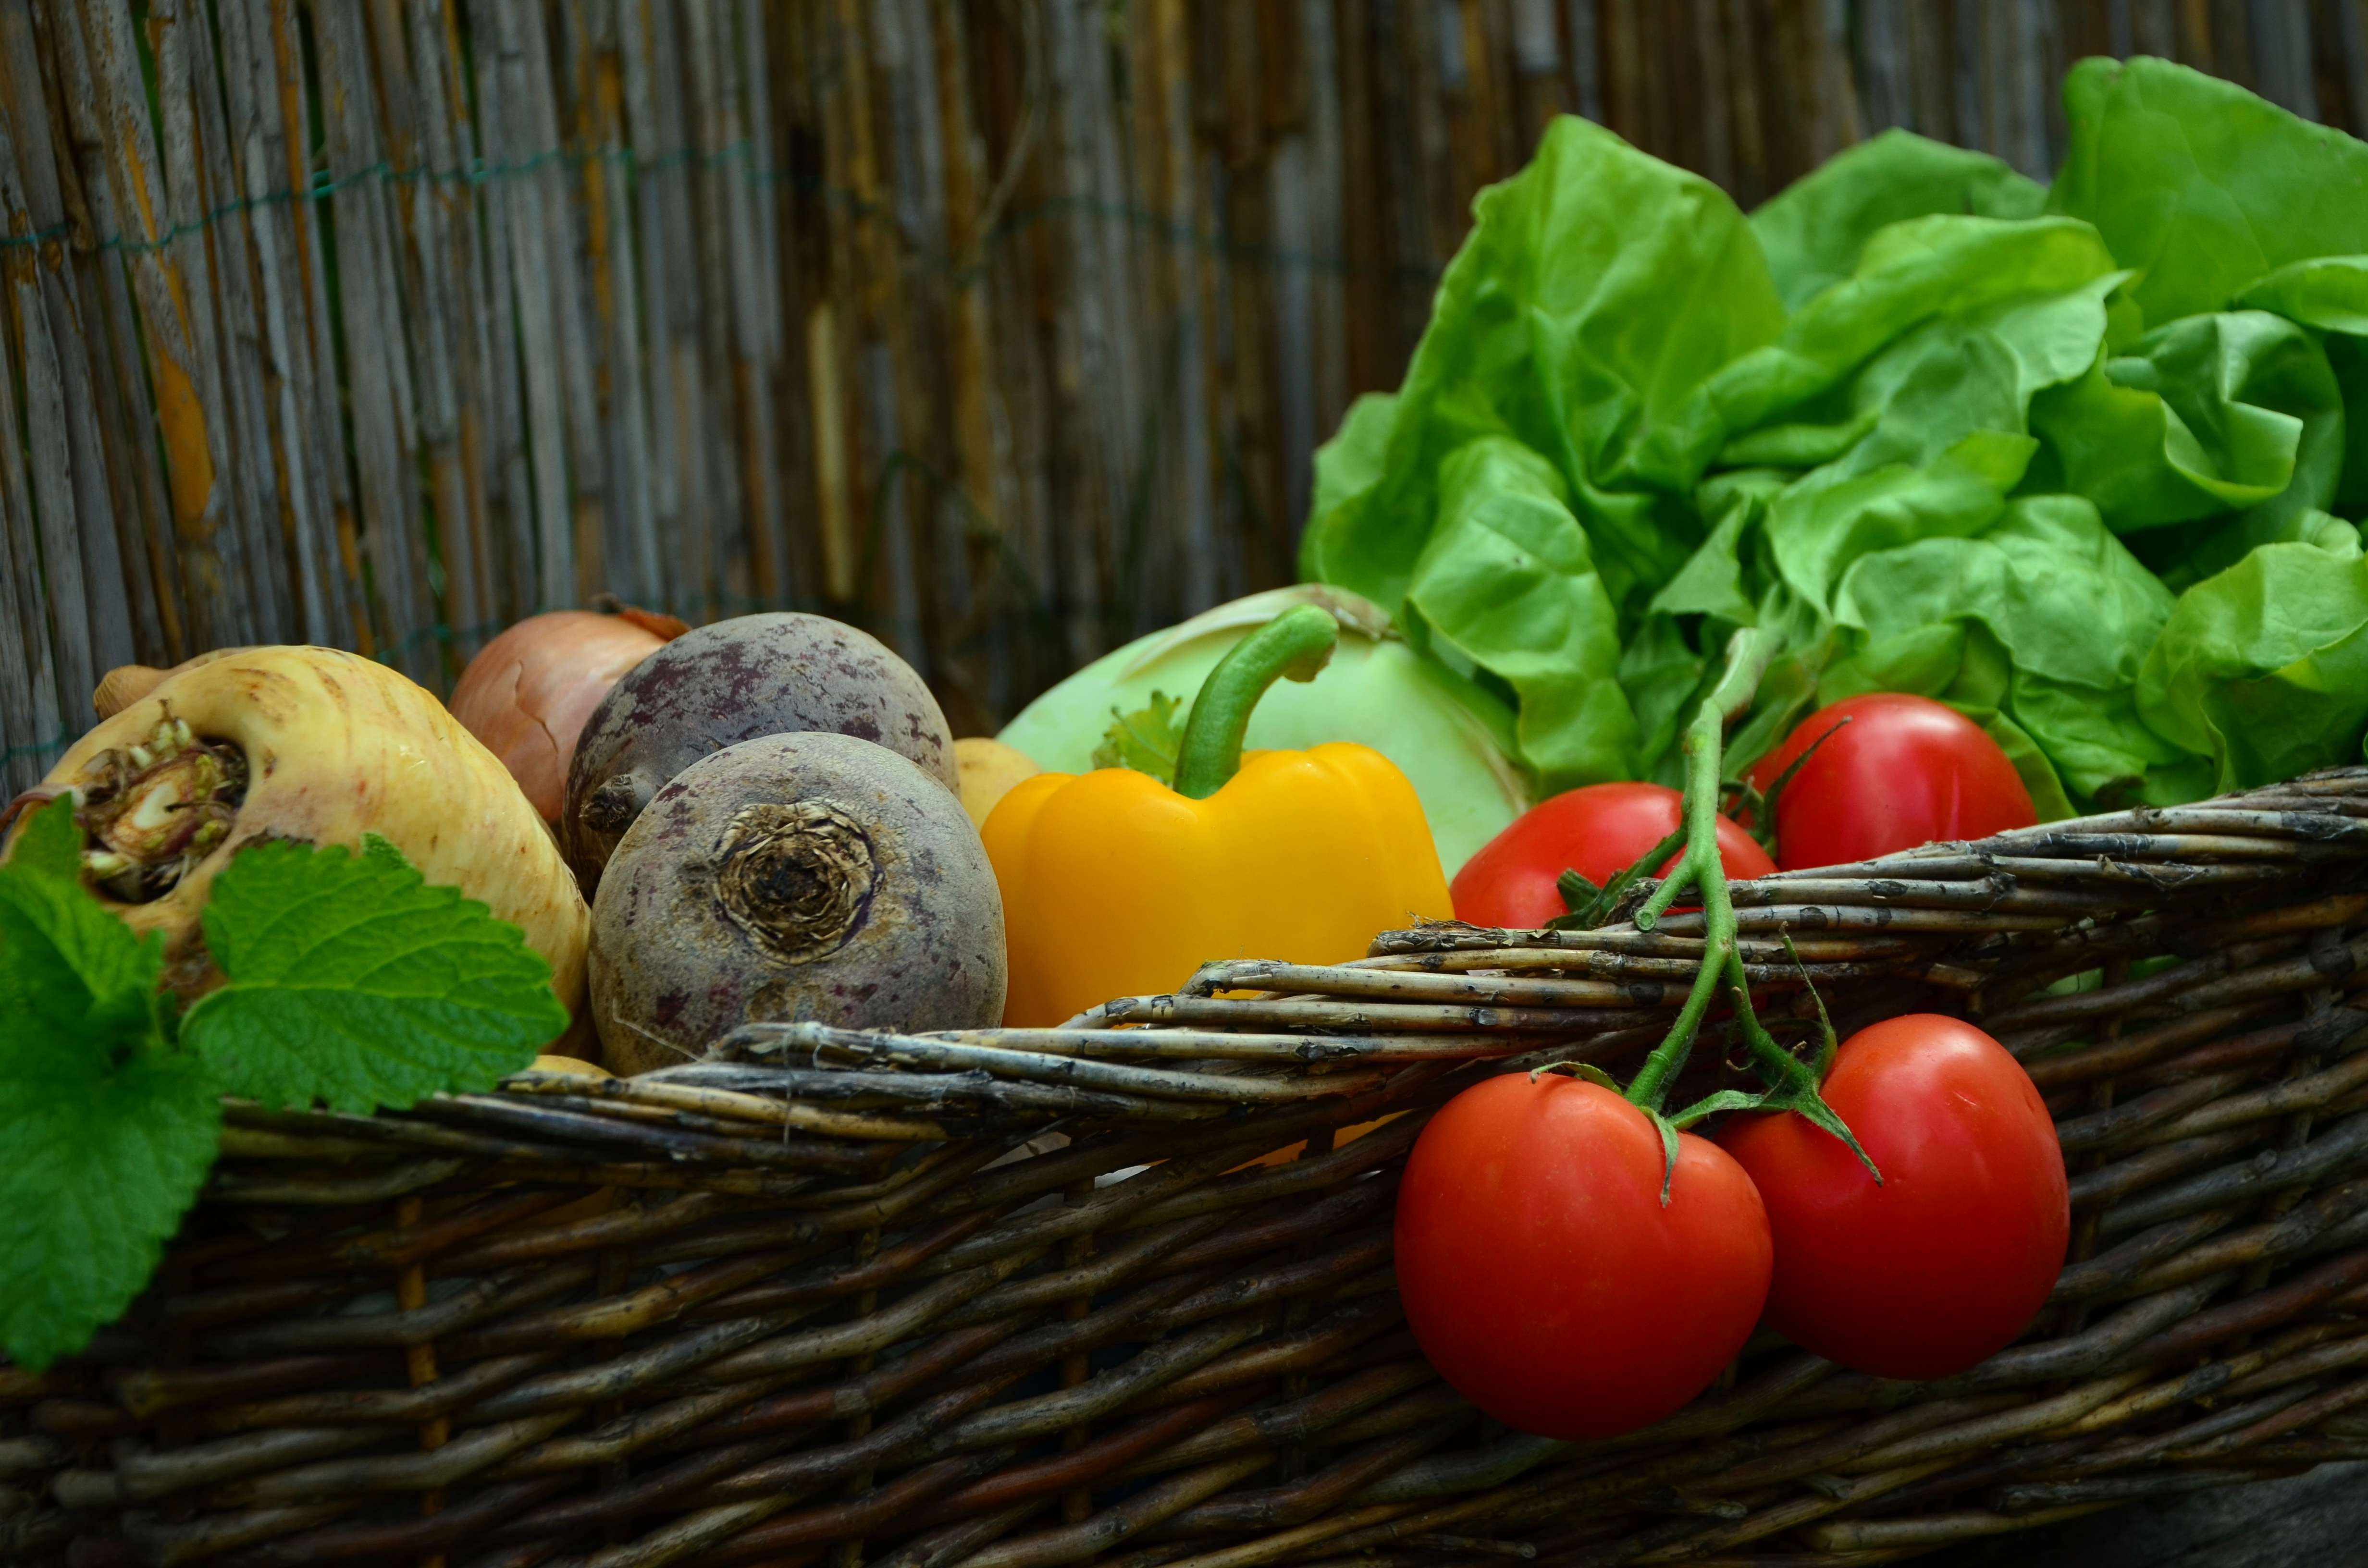 Garden basket with root vegetables, tomatoes, lettuce, etc.